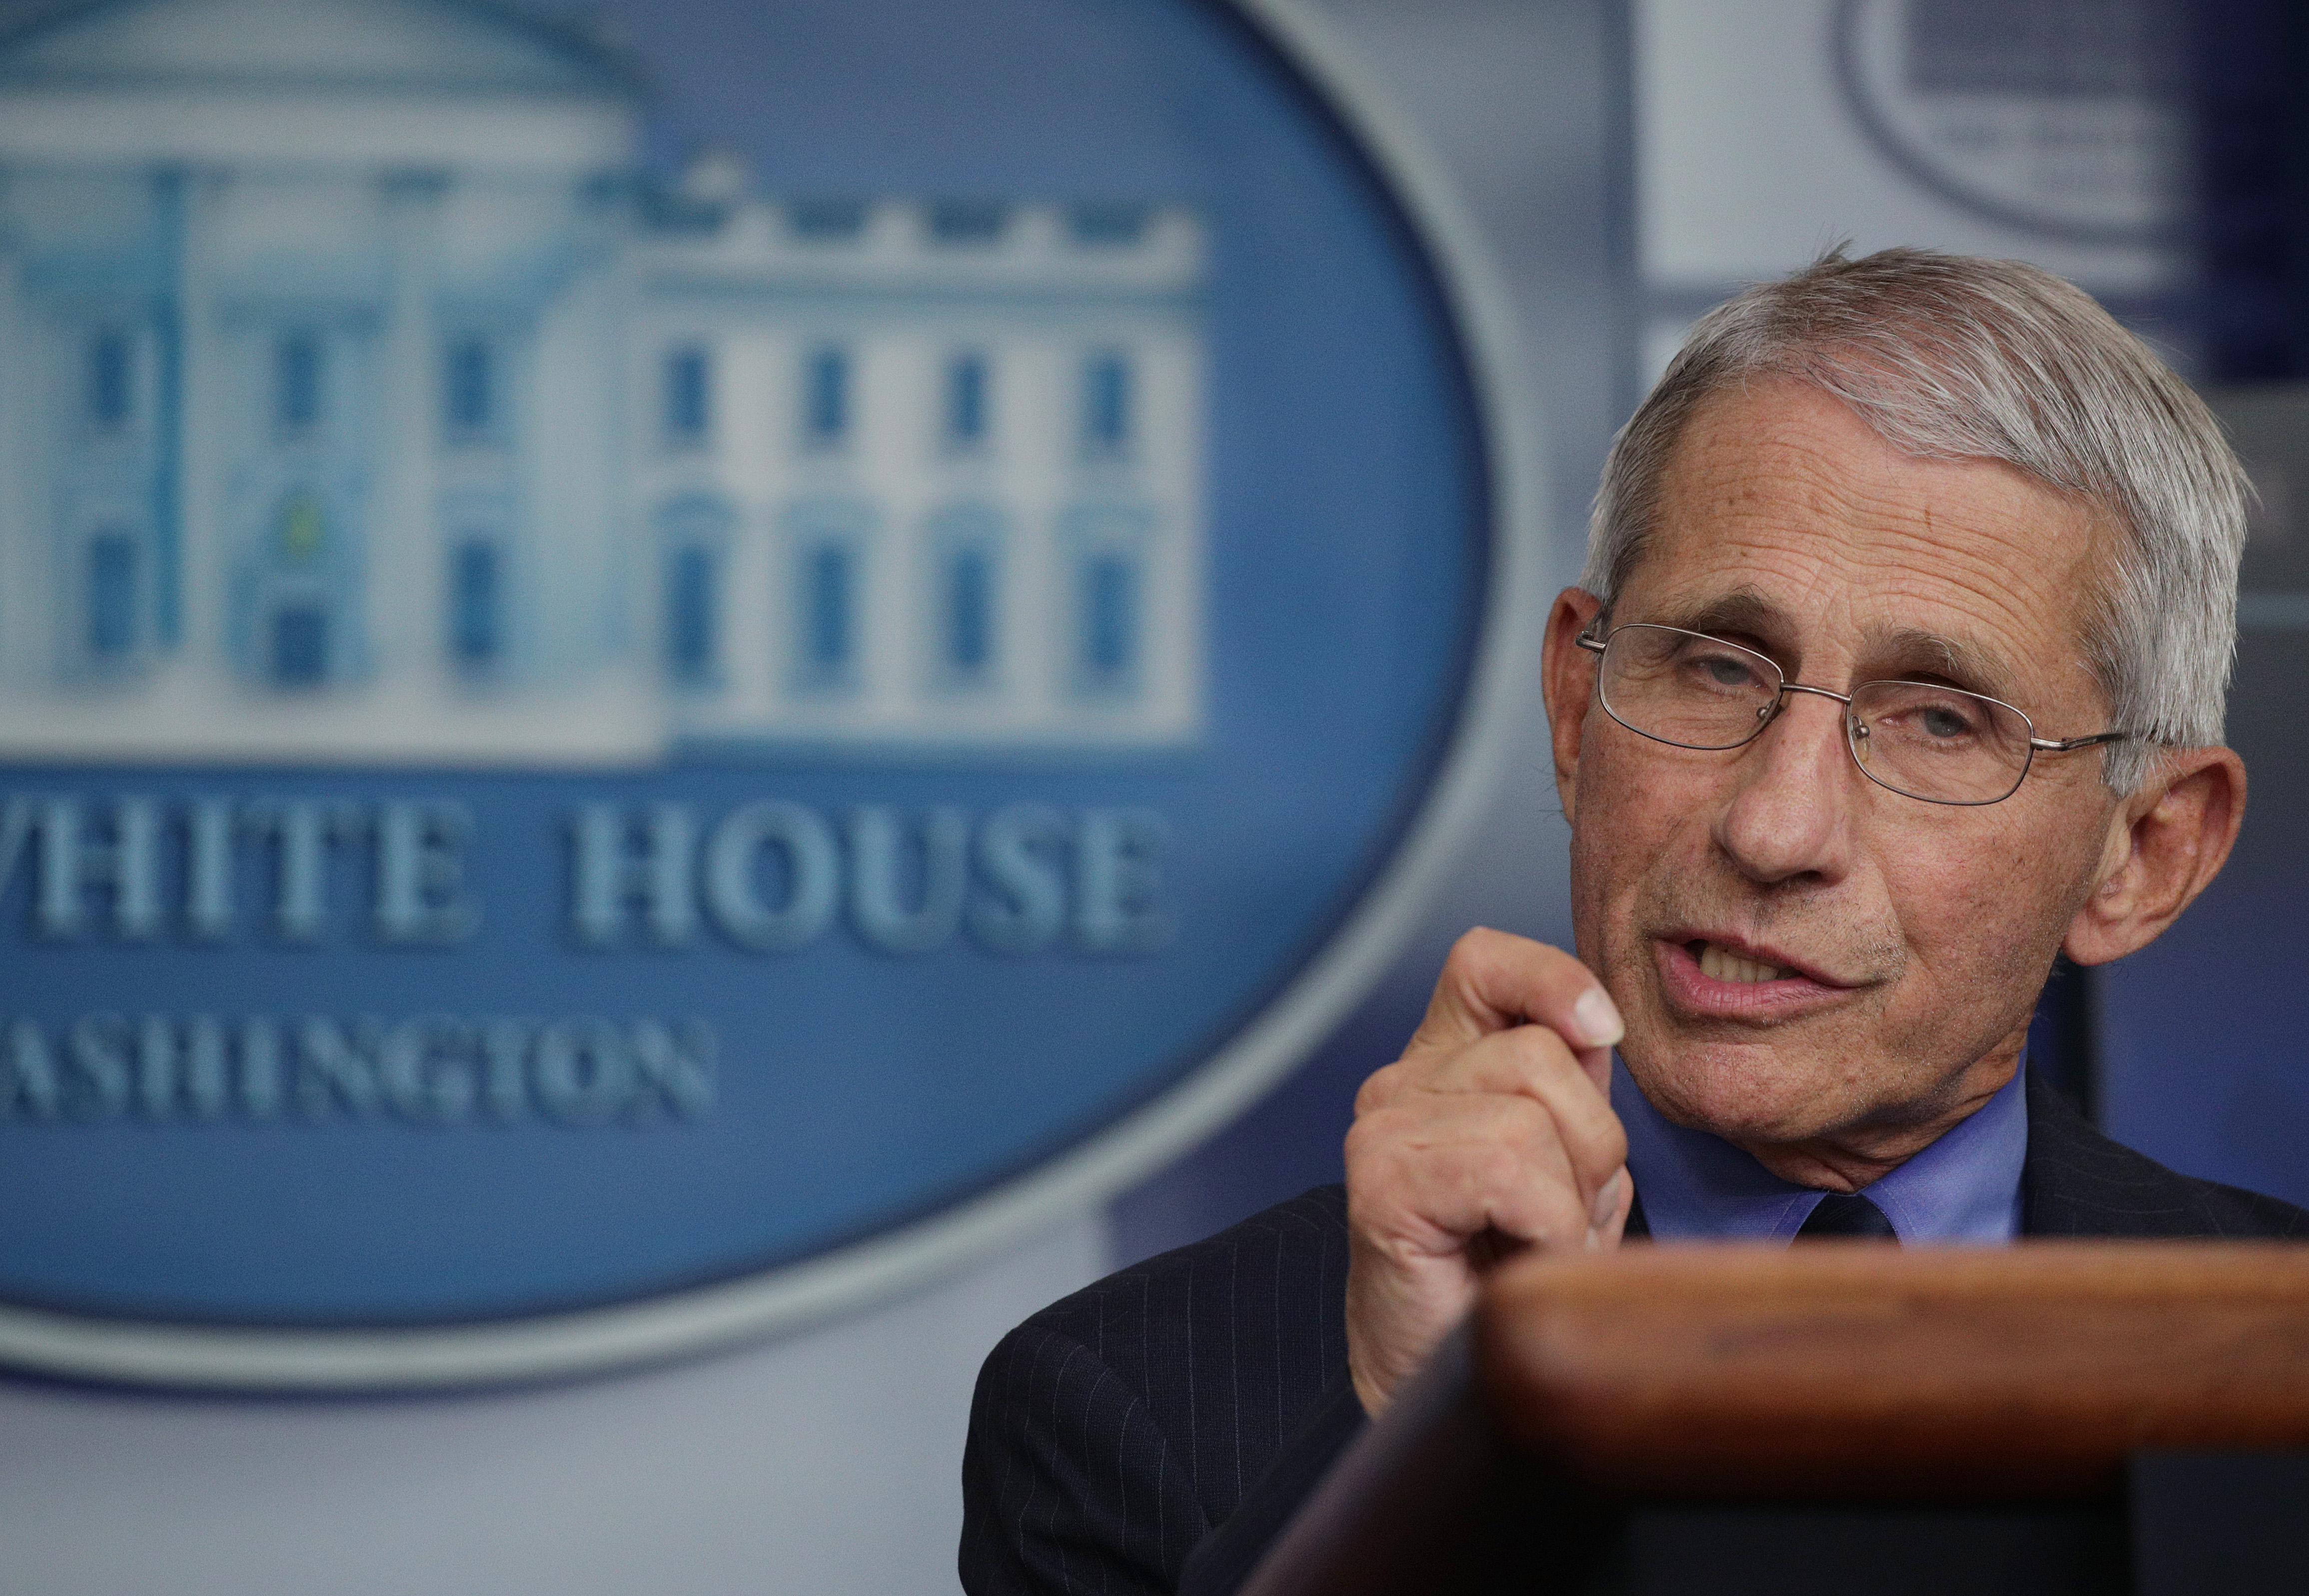 Dr. Anthony Fauci, director of the National Institute of Allergy and Infectious Diseases, speaks at a coronavirus briefing at the White House on April 17.